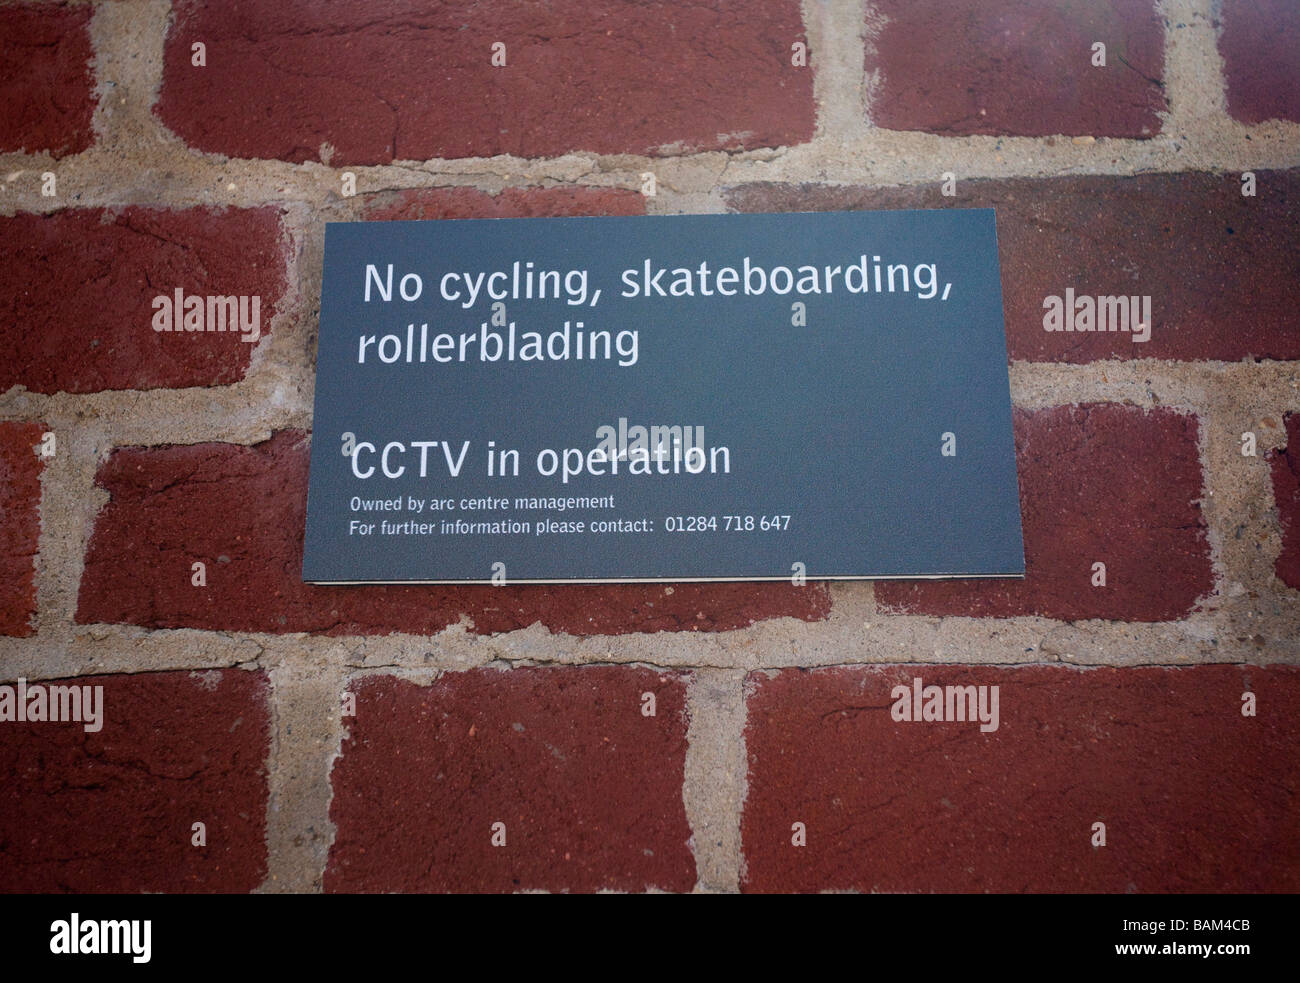 privatized shopping area sign in the UK - Stock Image